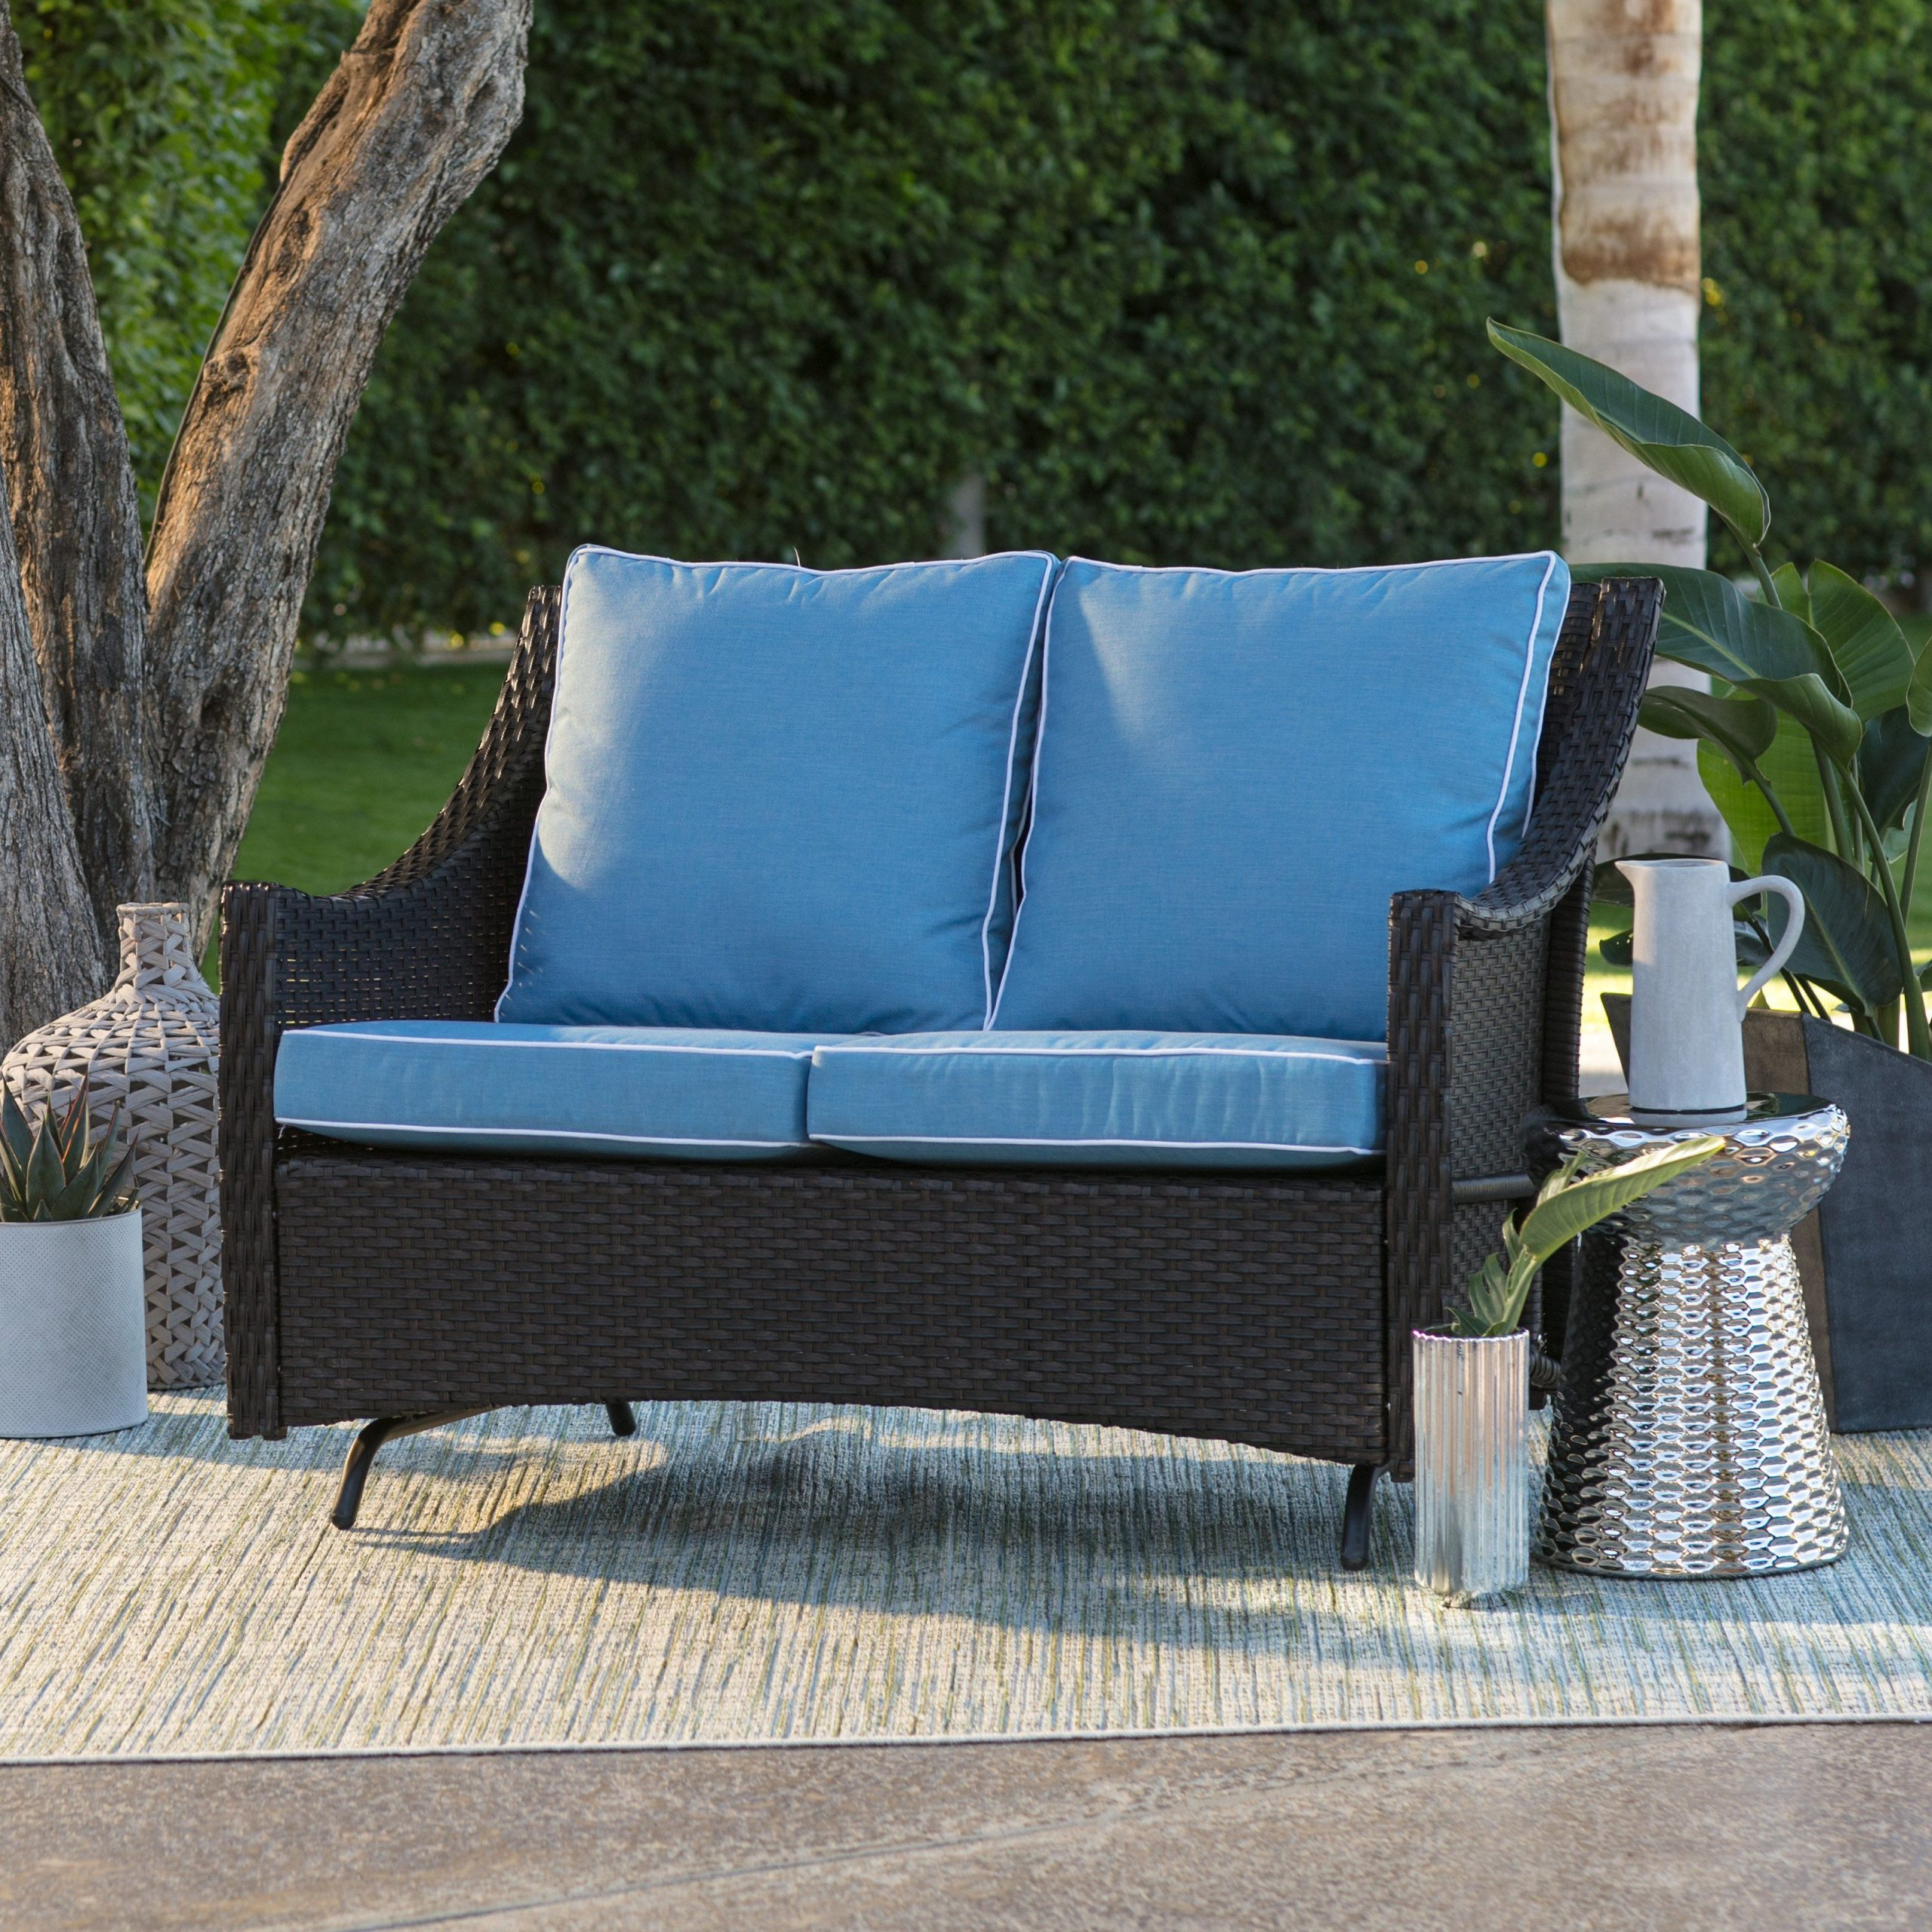 Most Popular Linwood Loveseats With Cushions With Outdoor Belham Living Lindau All Weather Wicker Loveseat (View 13 of 25)